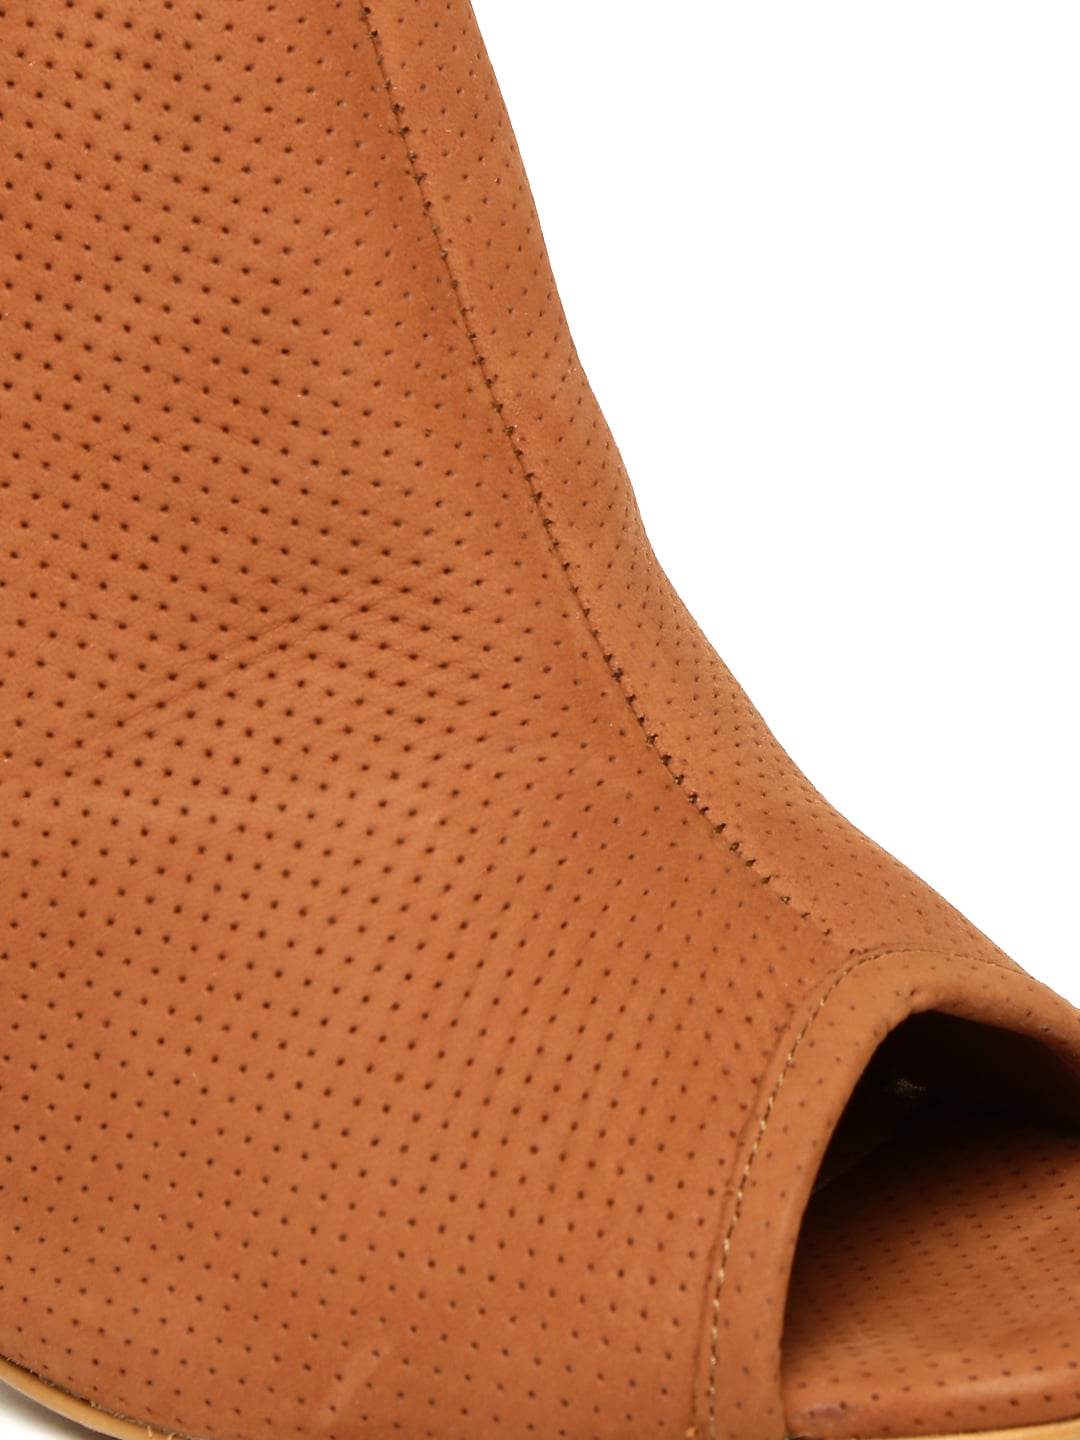 Carlton London Women Brown Solid Perforated Leather Mules